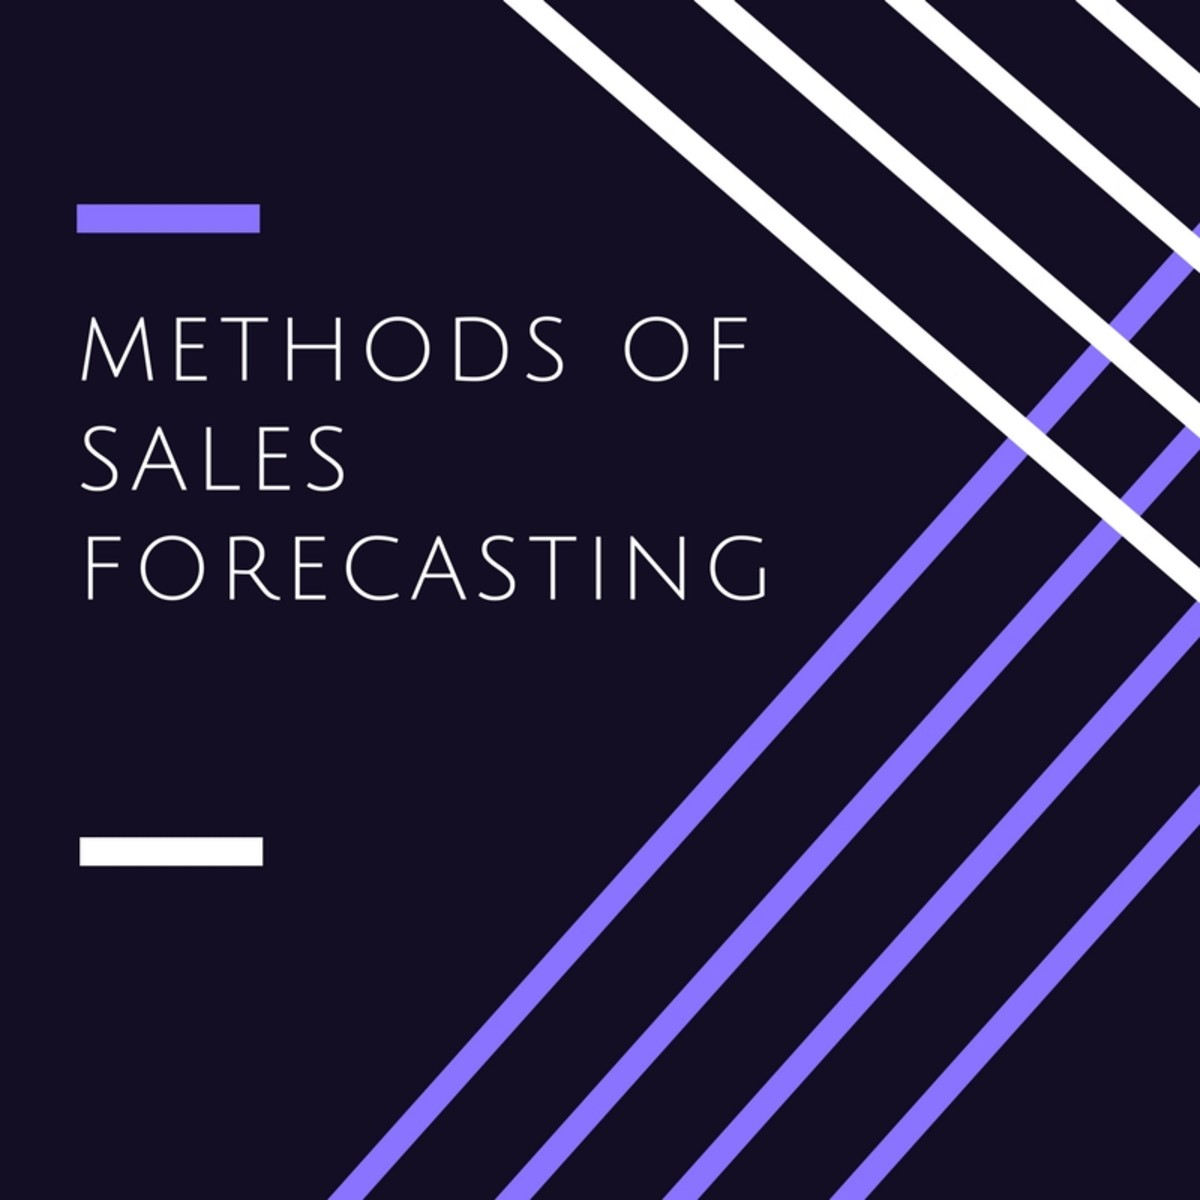 Sales forecasting is one of the most difficult but critical skills to master.